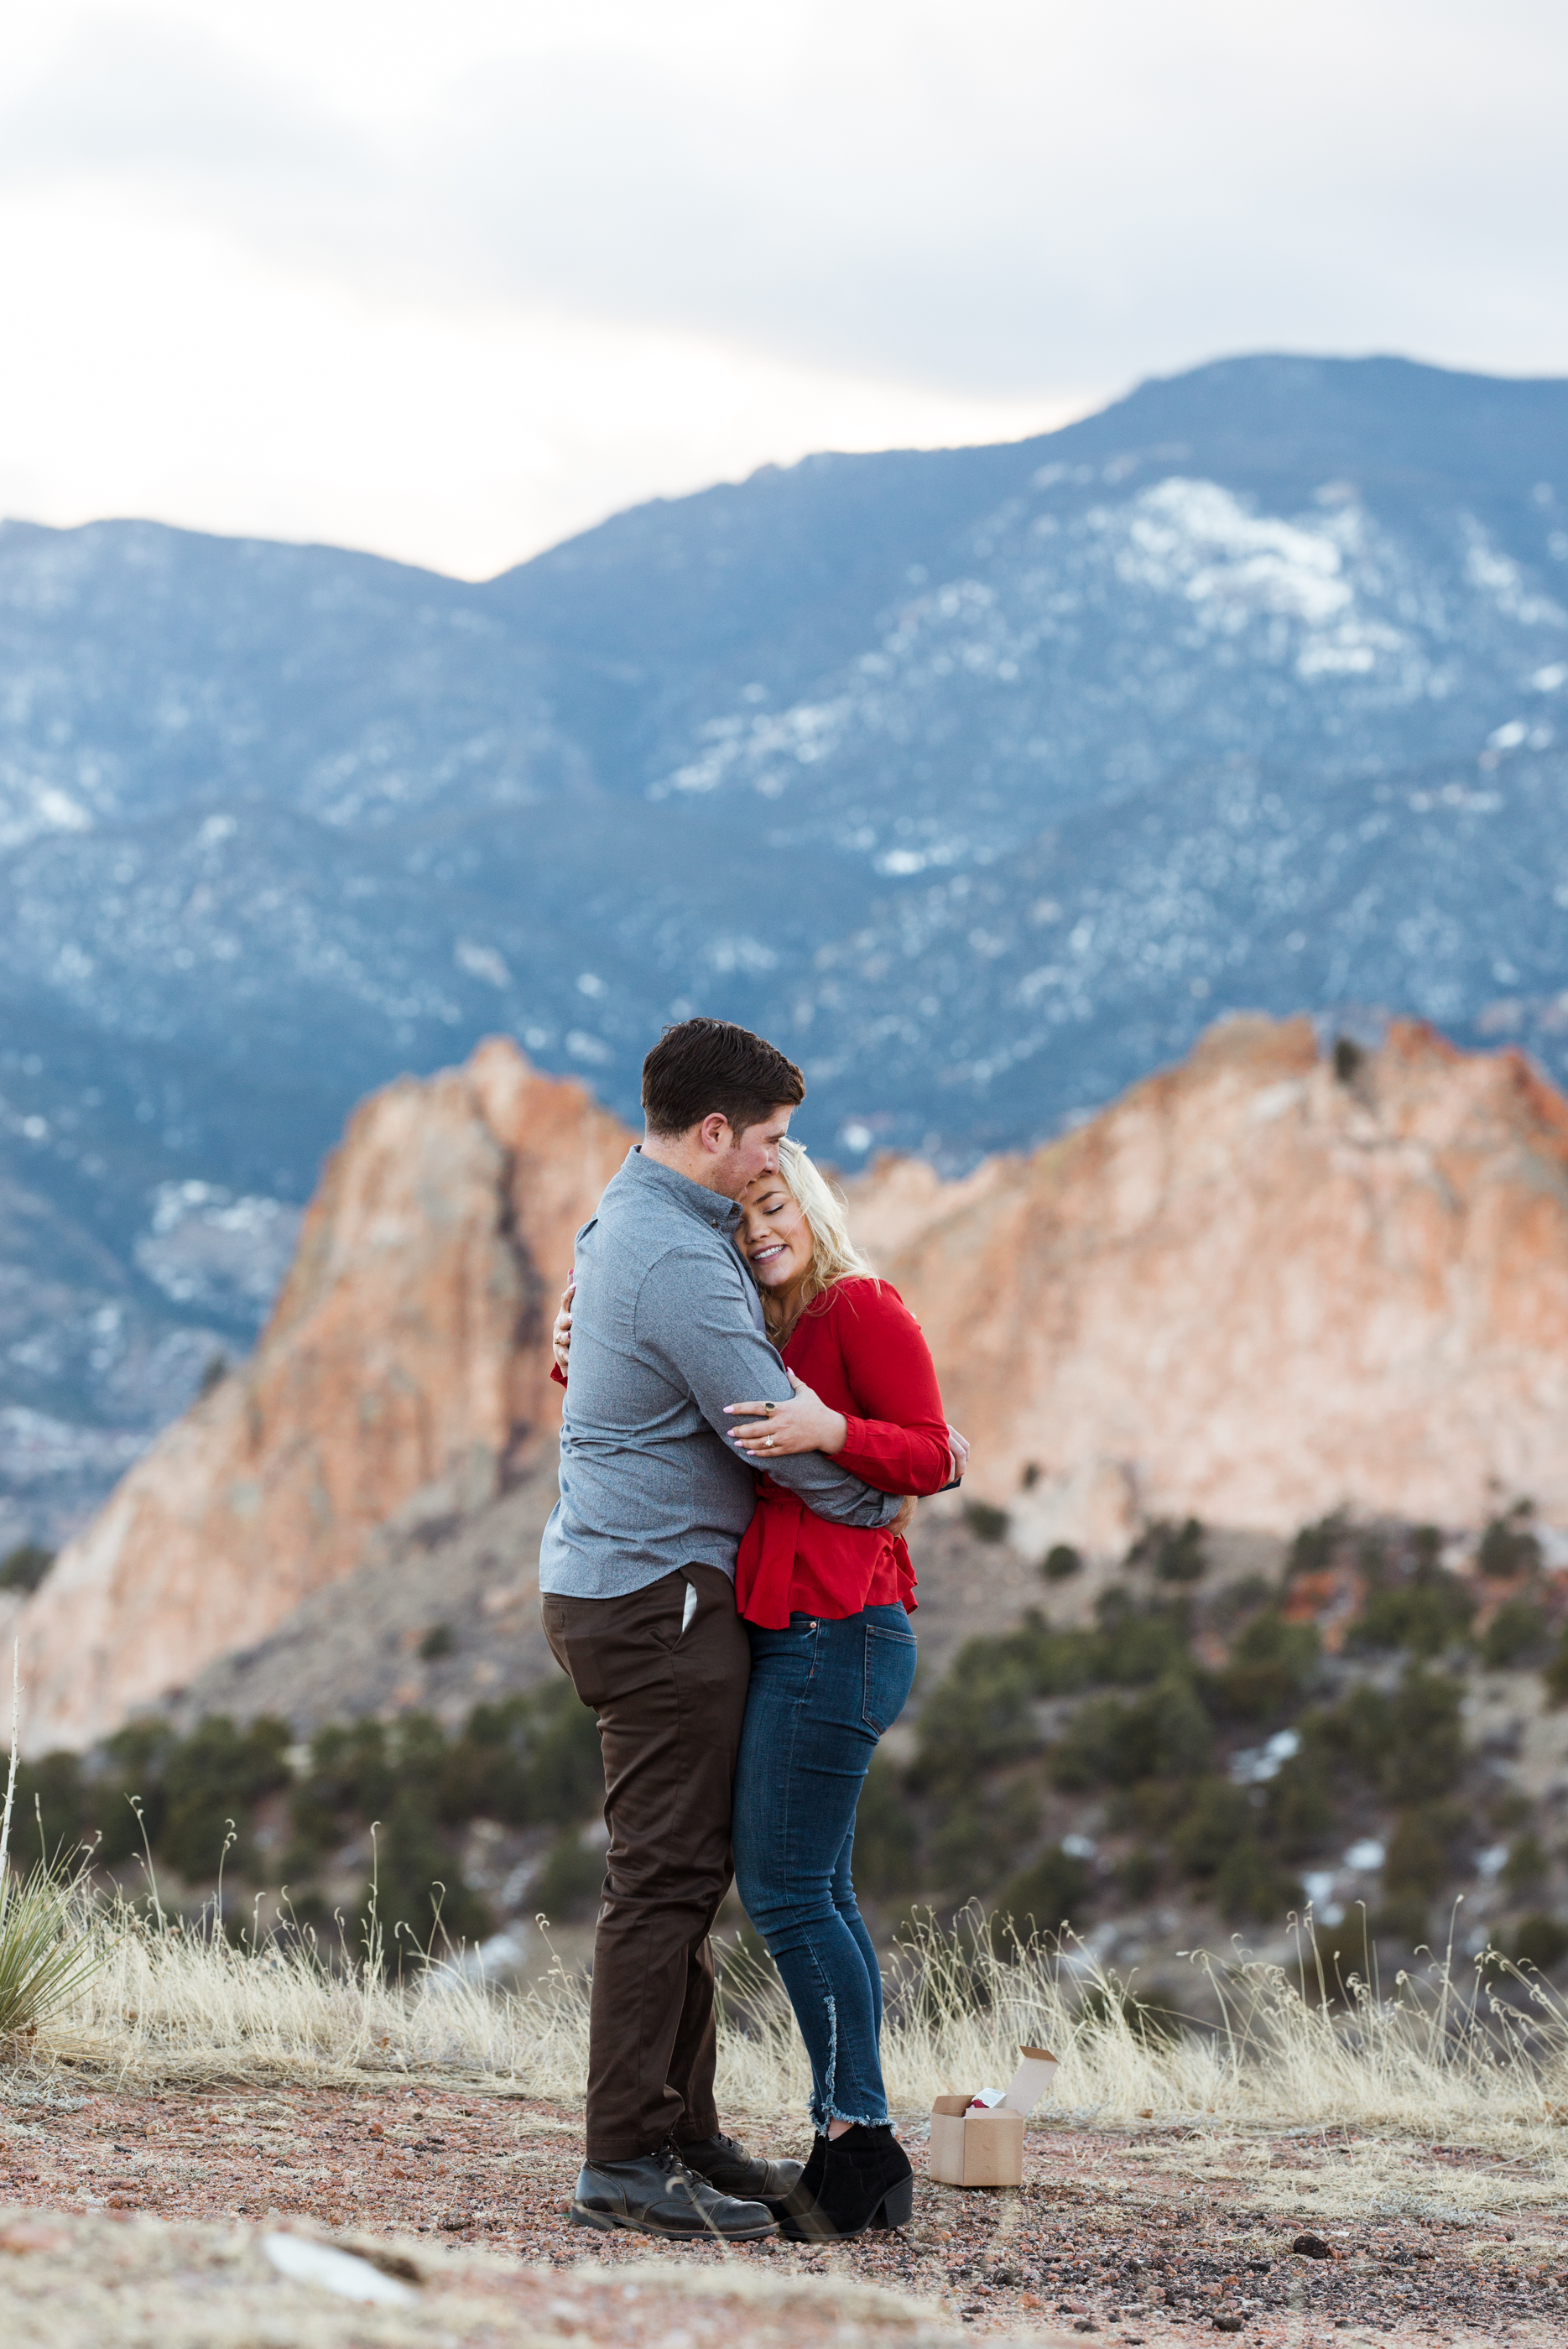 Check out this surprise Colorado Springs proposal photoshoot.